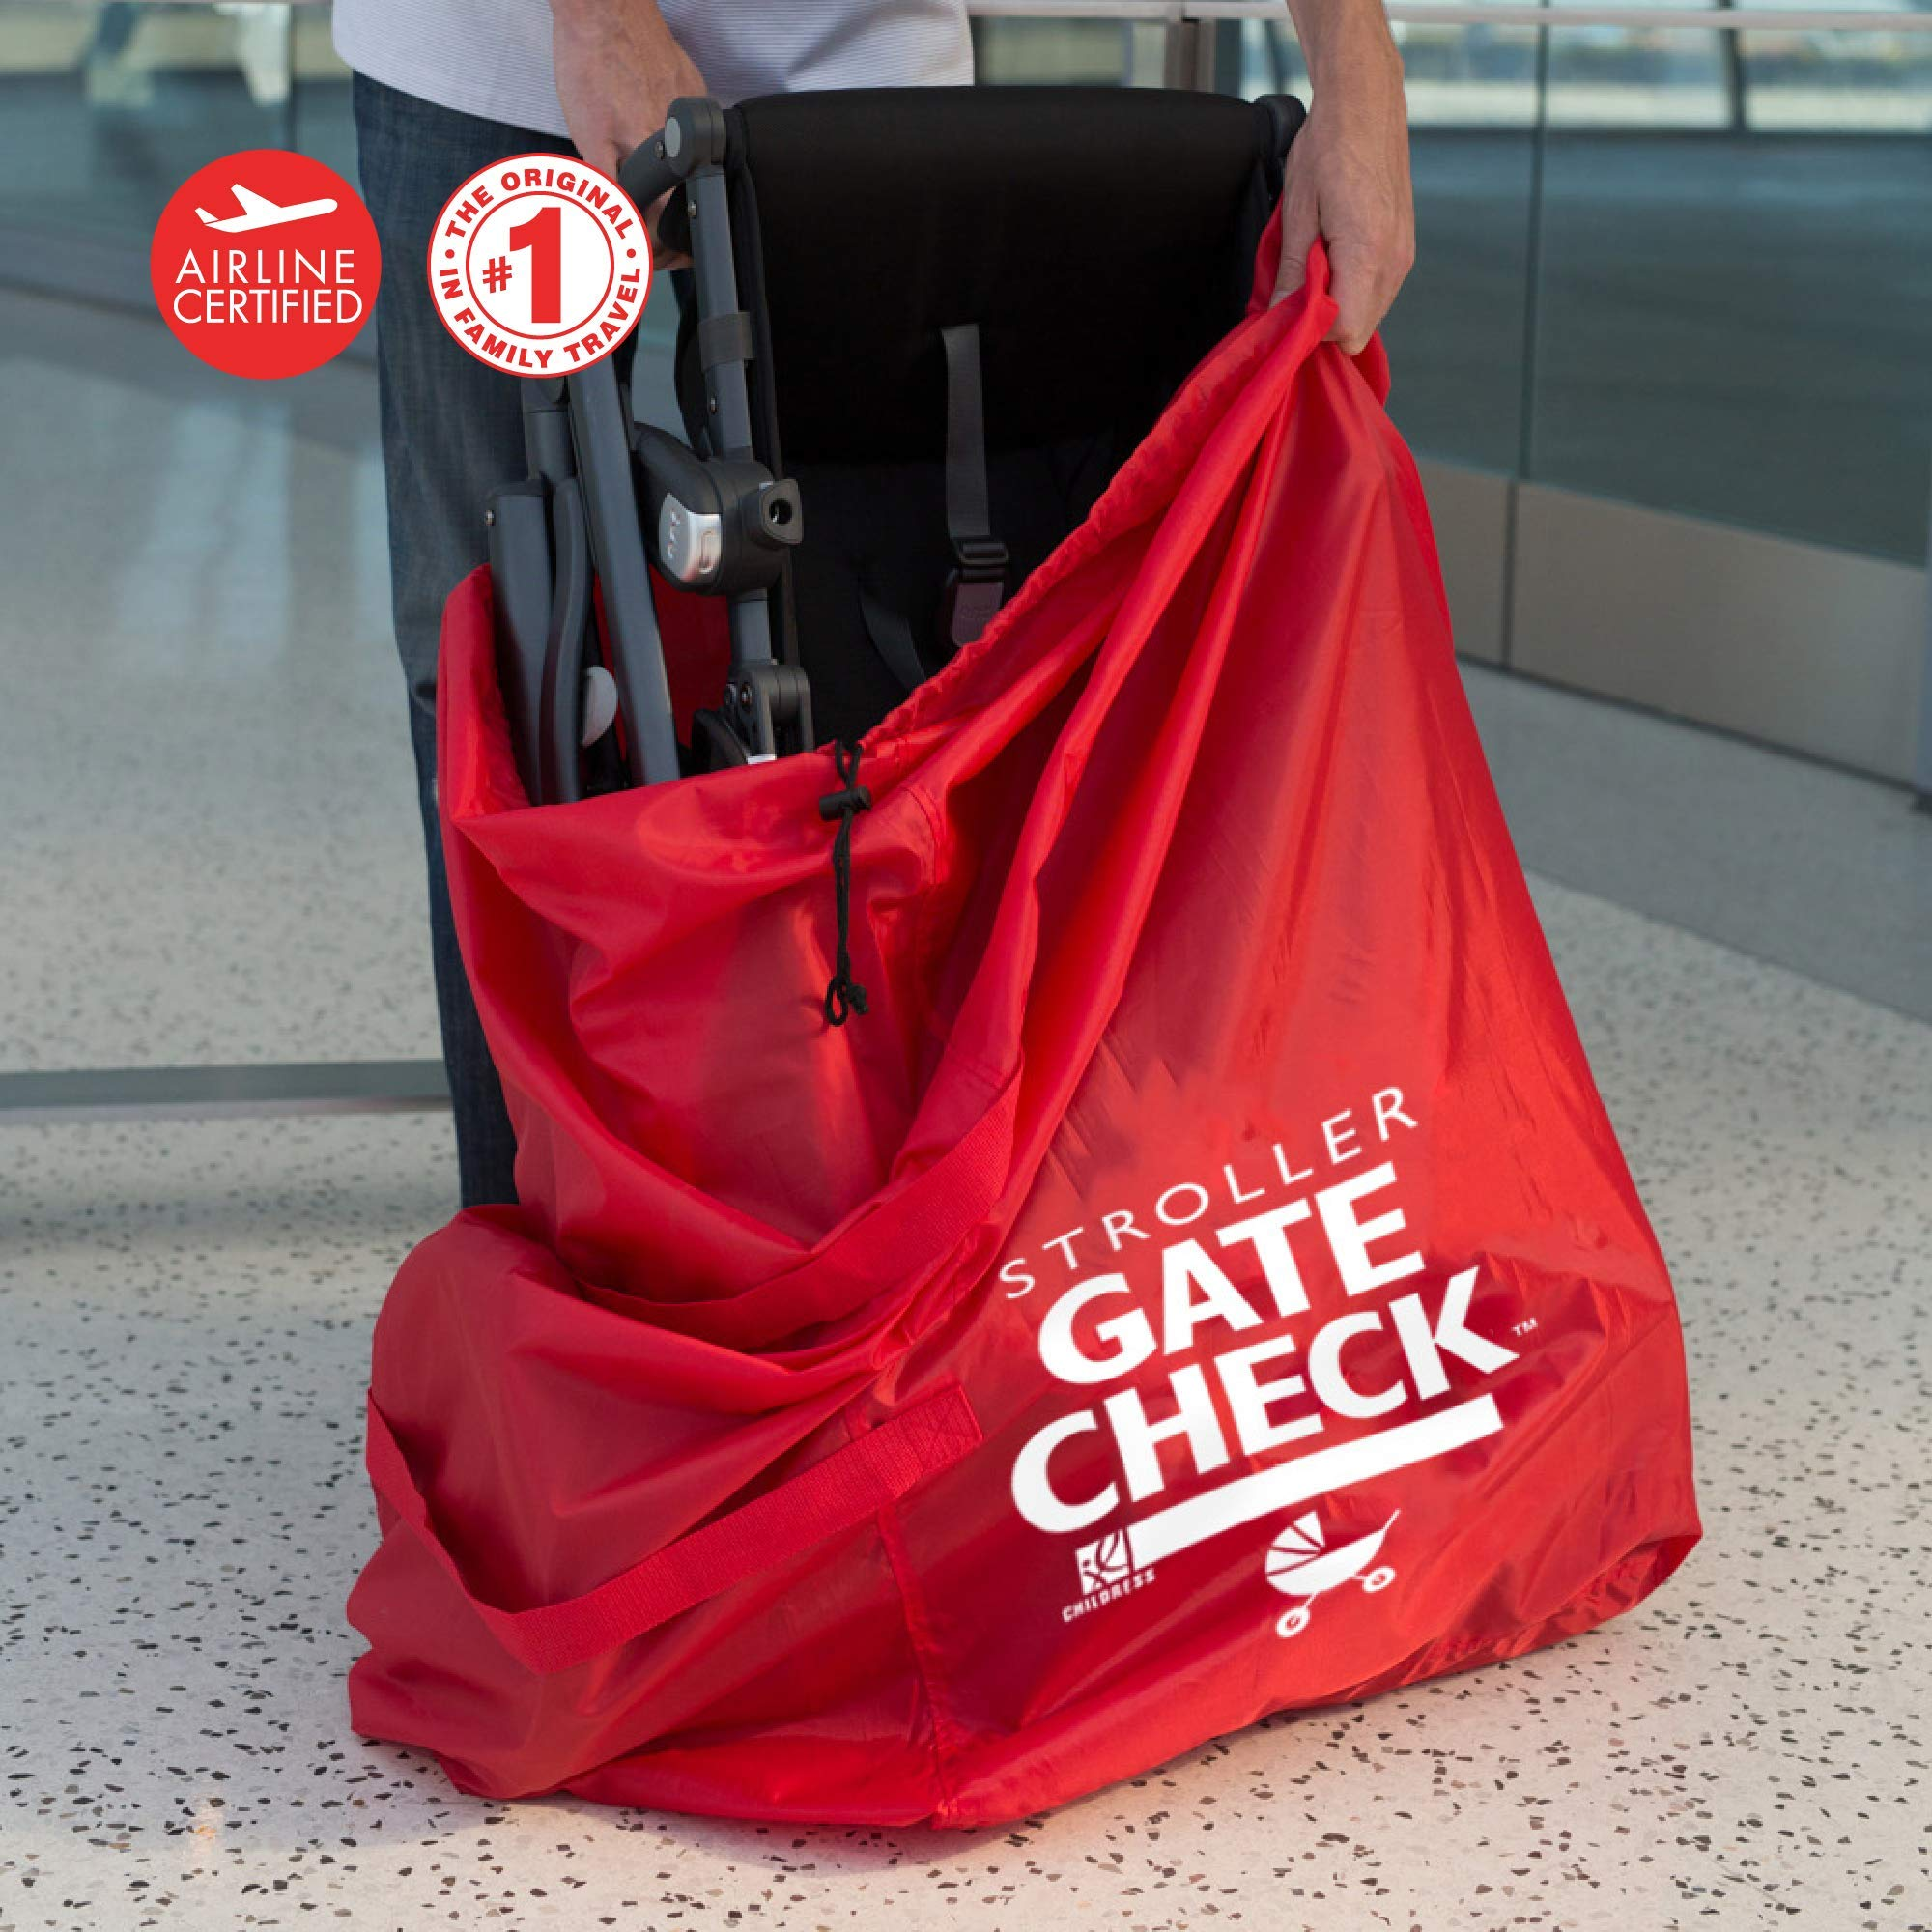 J.L. Childress Gate Check Bag For Standard and Double Strollers, Red by J.L. Childress (Image #7)